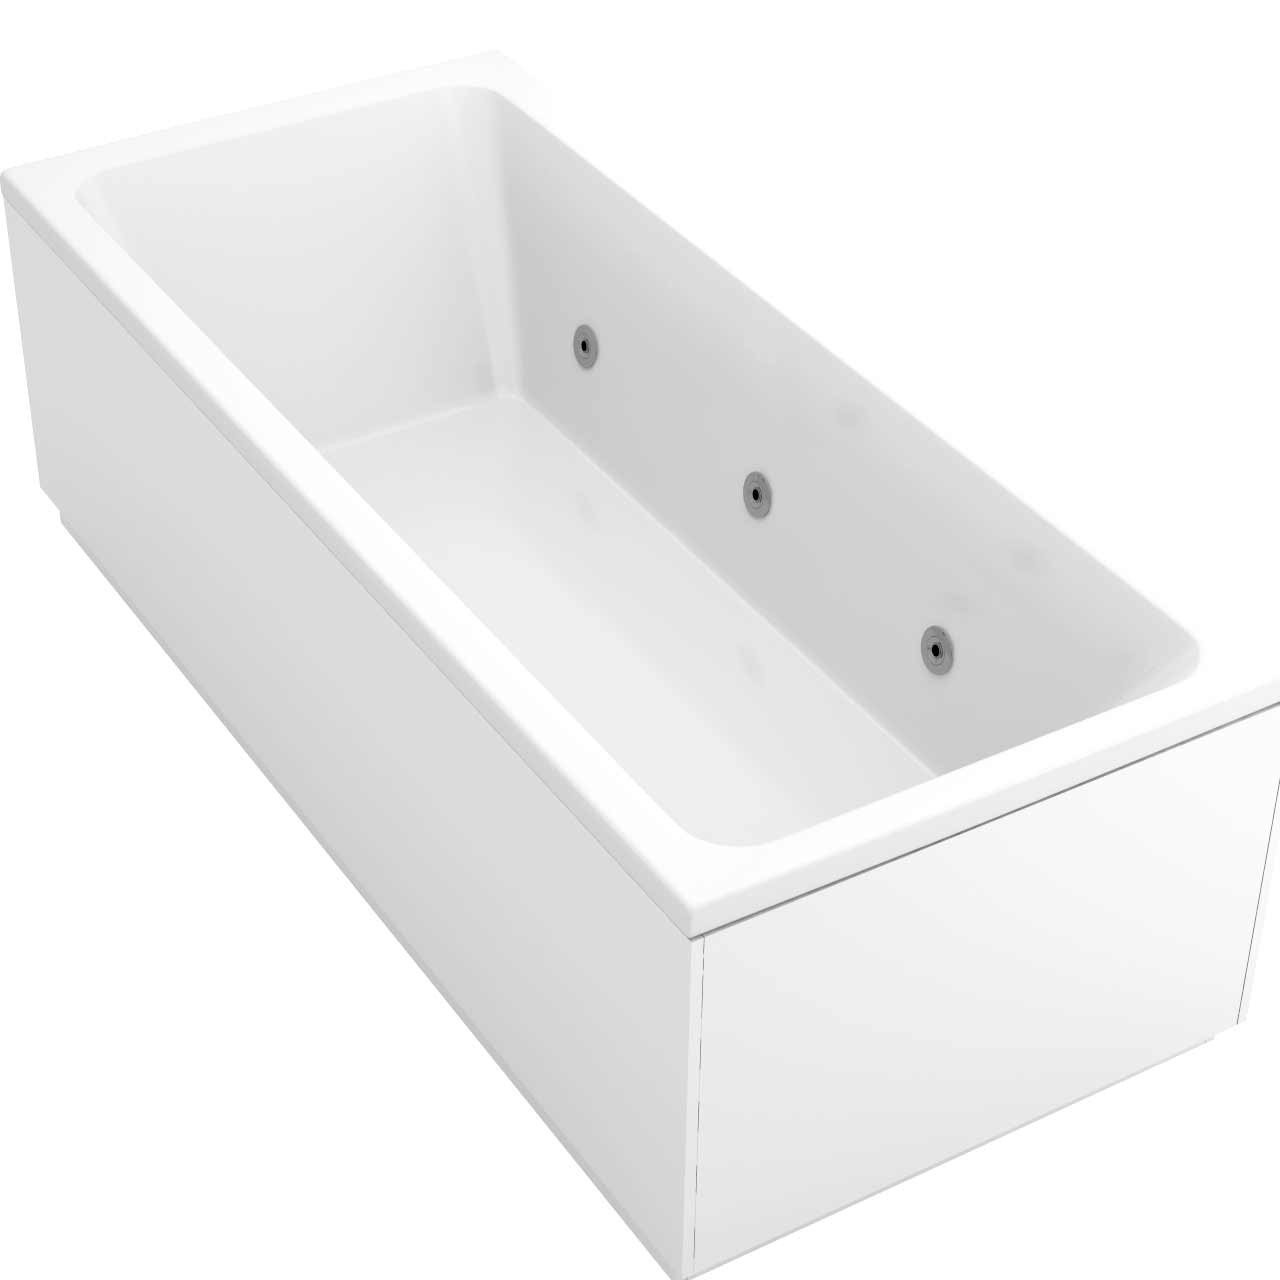 Square Centre Tap 6 Jet Chrome Flat Jet Whirlpool Bath 1800x800mm